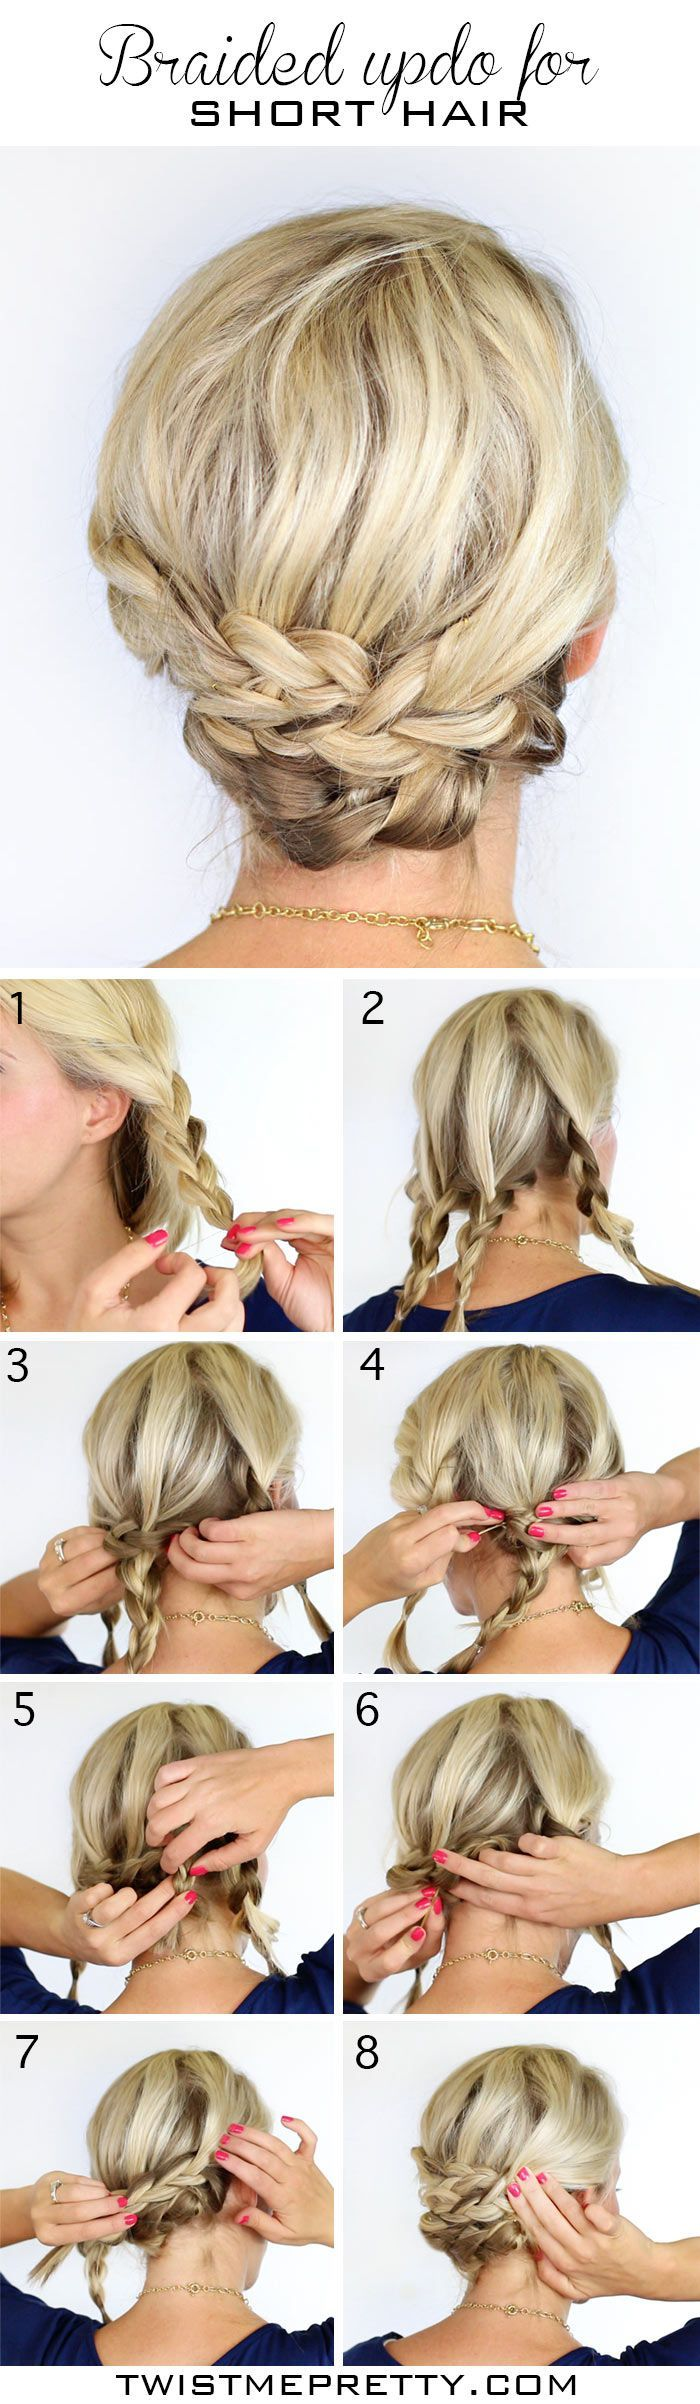 Braided Updo Hairstyle for Short Hair